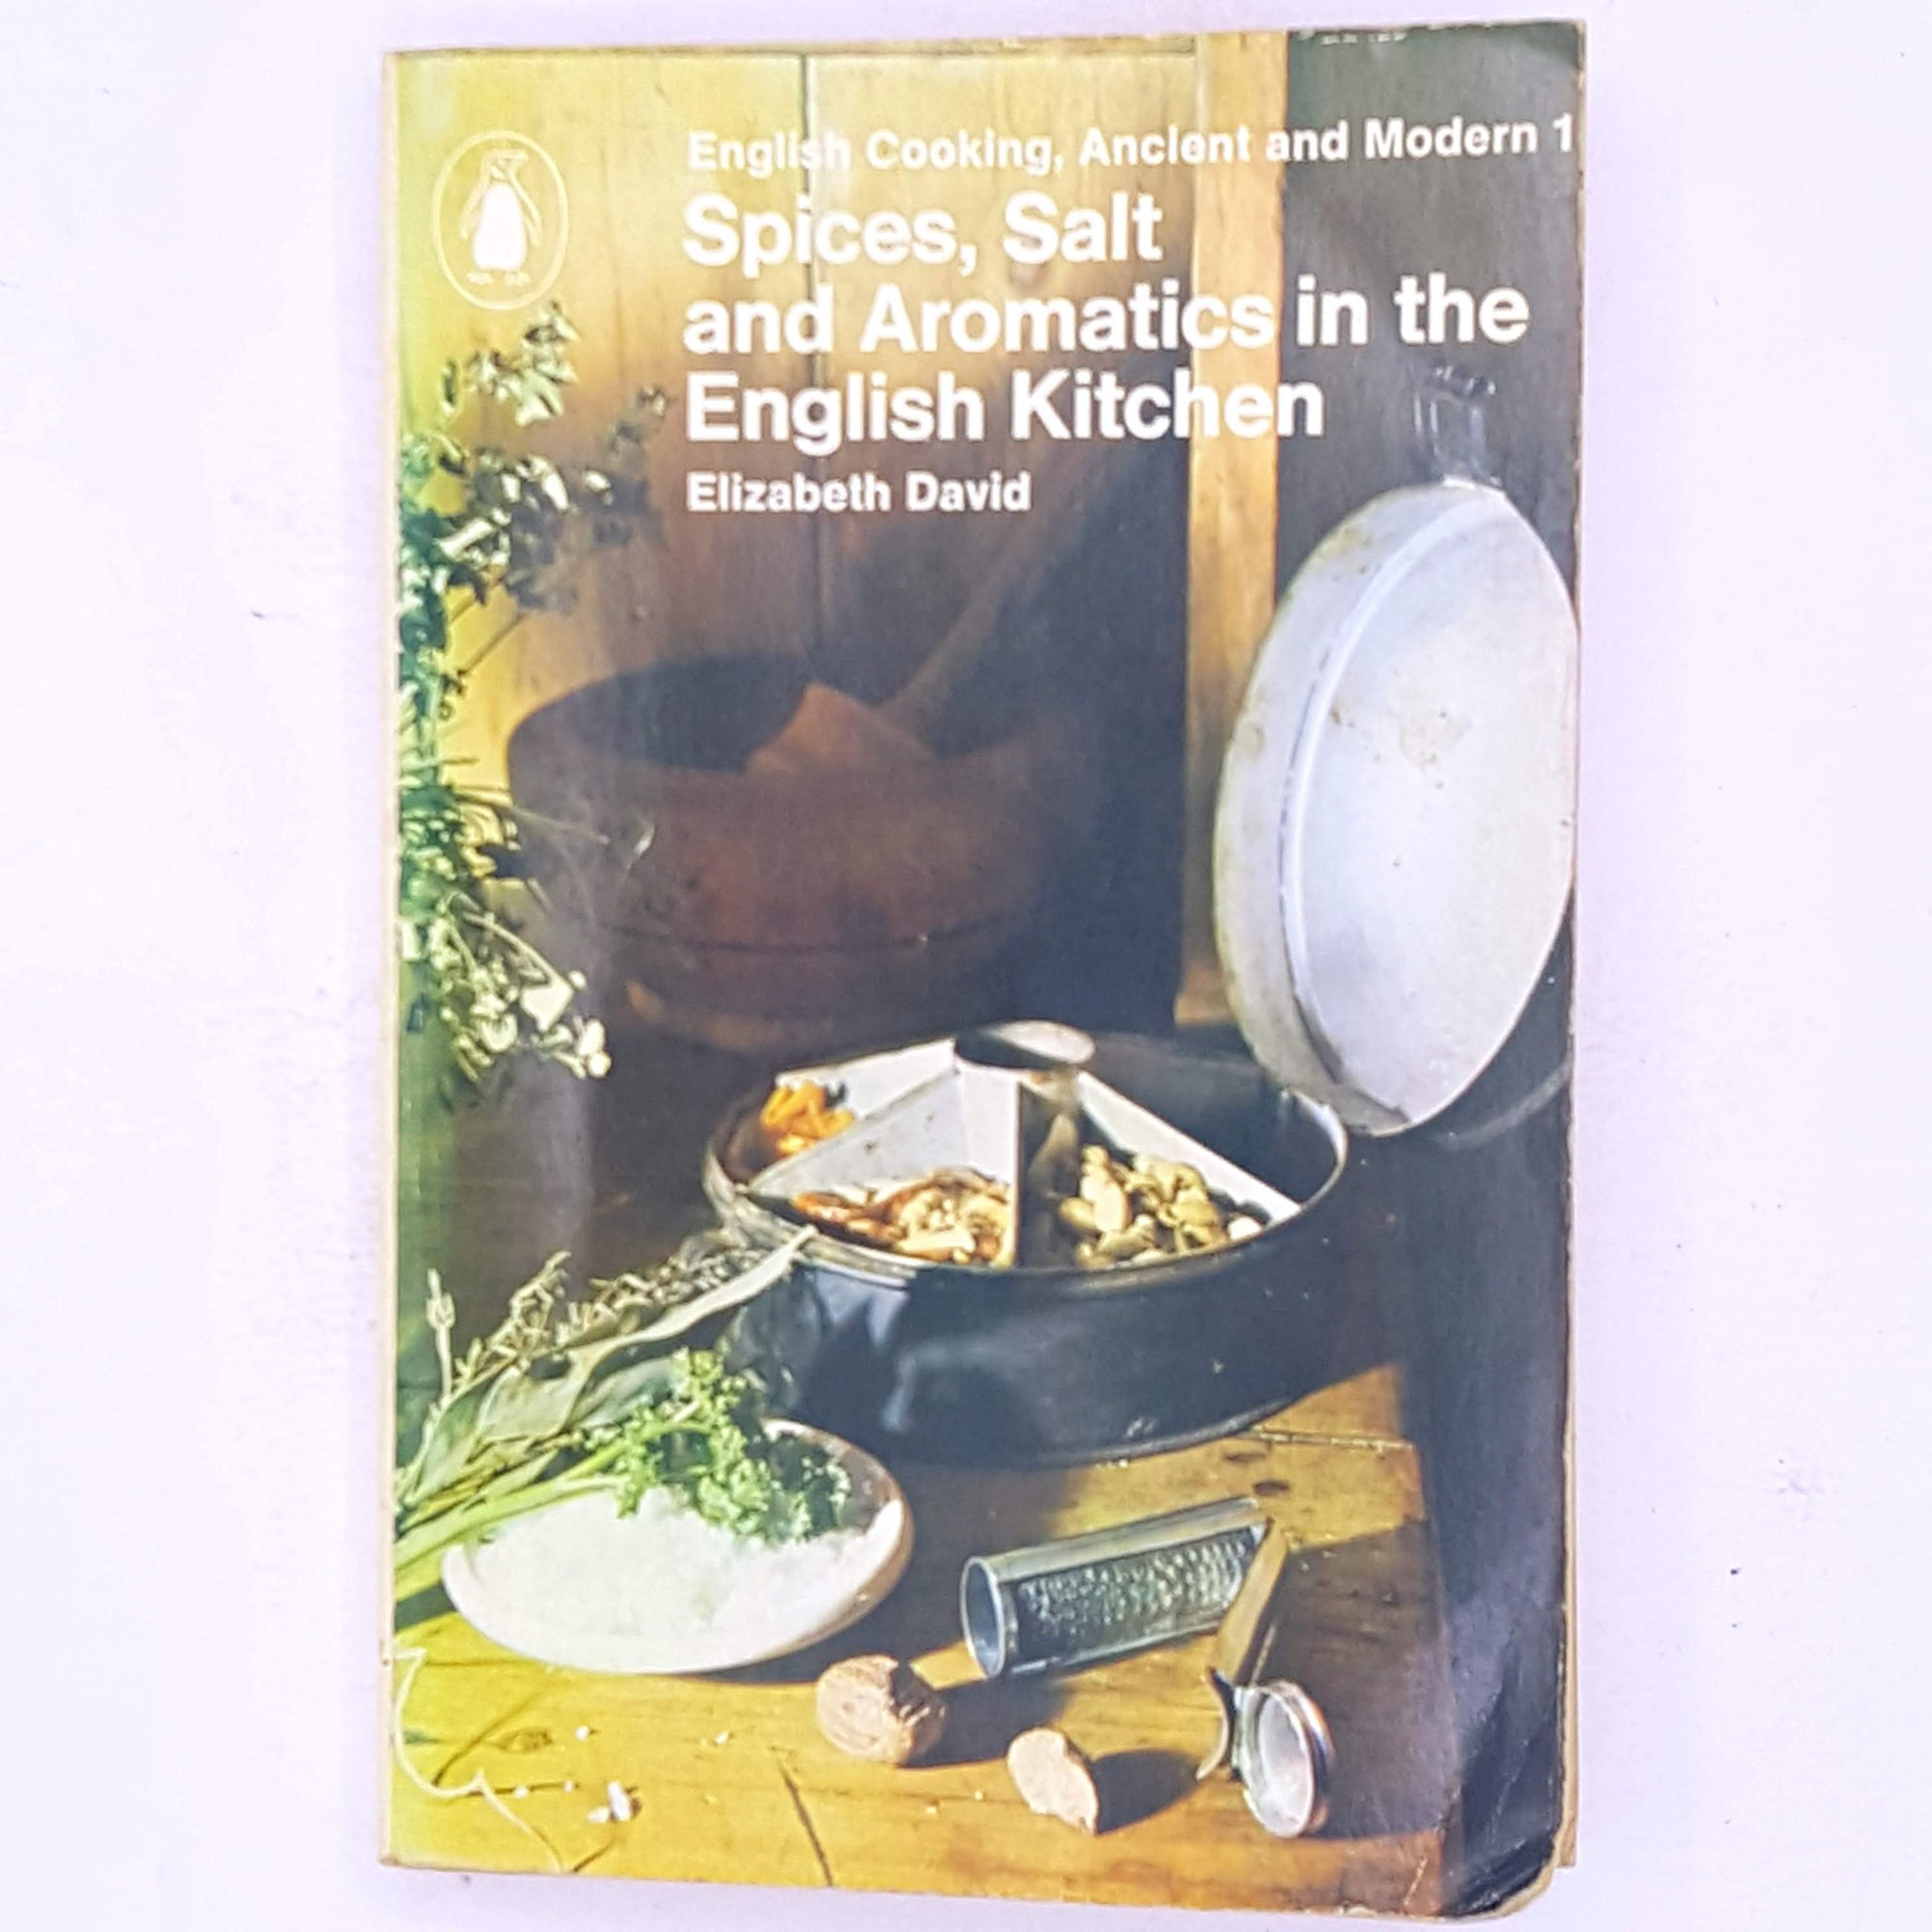 cooking-baking-A-Penguin-Handbook-English-Cooking-Ancient-&-Modern-1-Spices-Salt-and-Aromatics-in-the-English-Kitchen-by-Elizabeth-David-patterned-antique-food-ingredients- decorative-country-house-library-books-sweet-savoury-dishes- classic-cookbook-recipe-book-baking-book-old-for-foodies-food-breakfast-lunch-dinner-thrift-vintage-